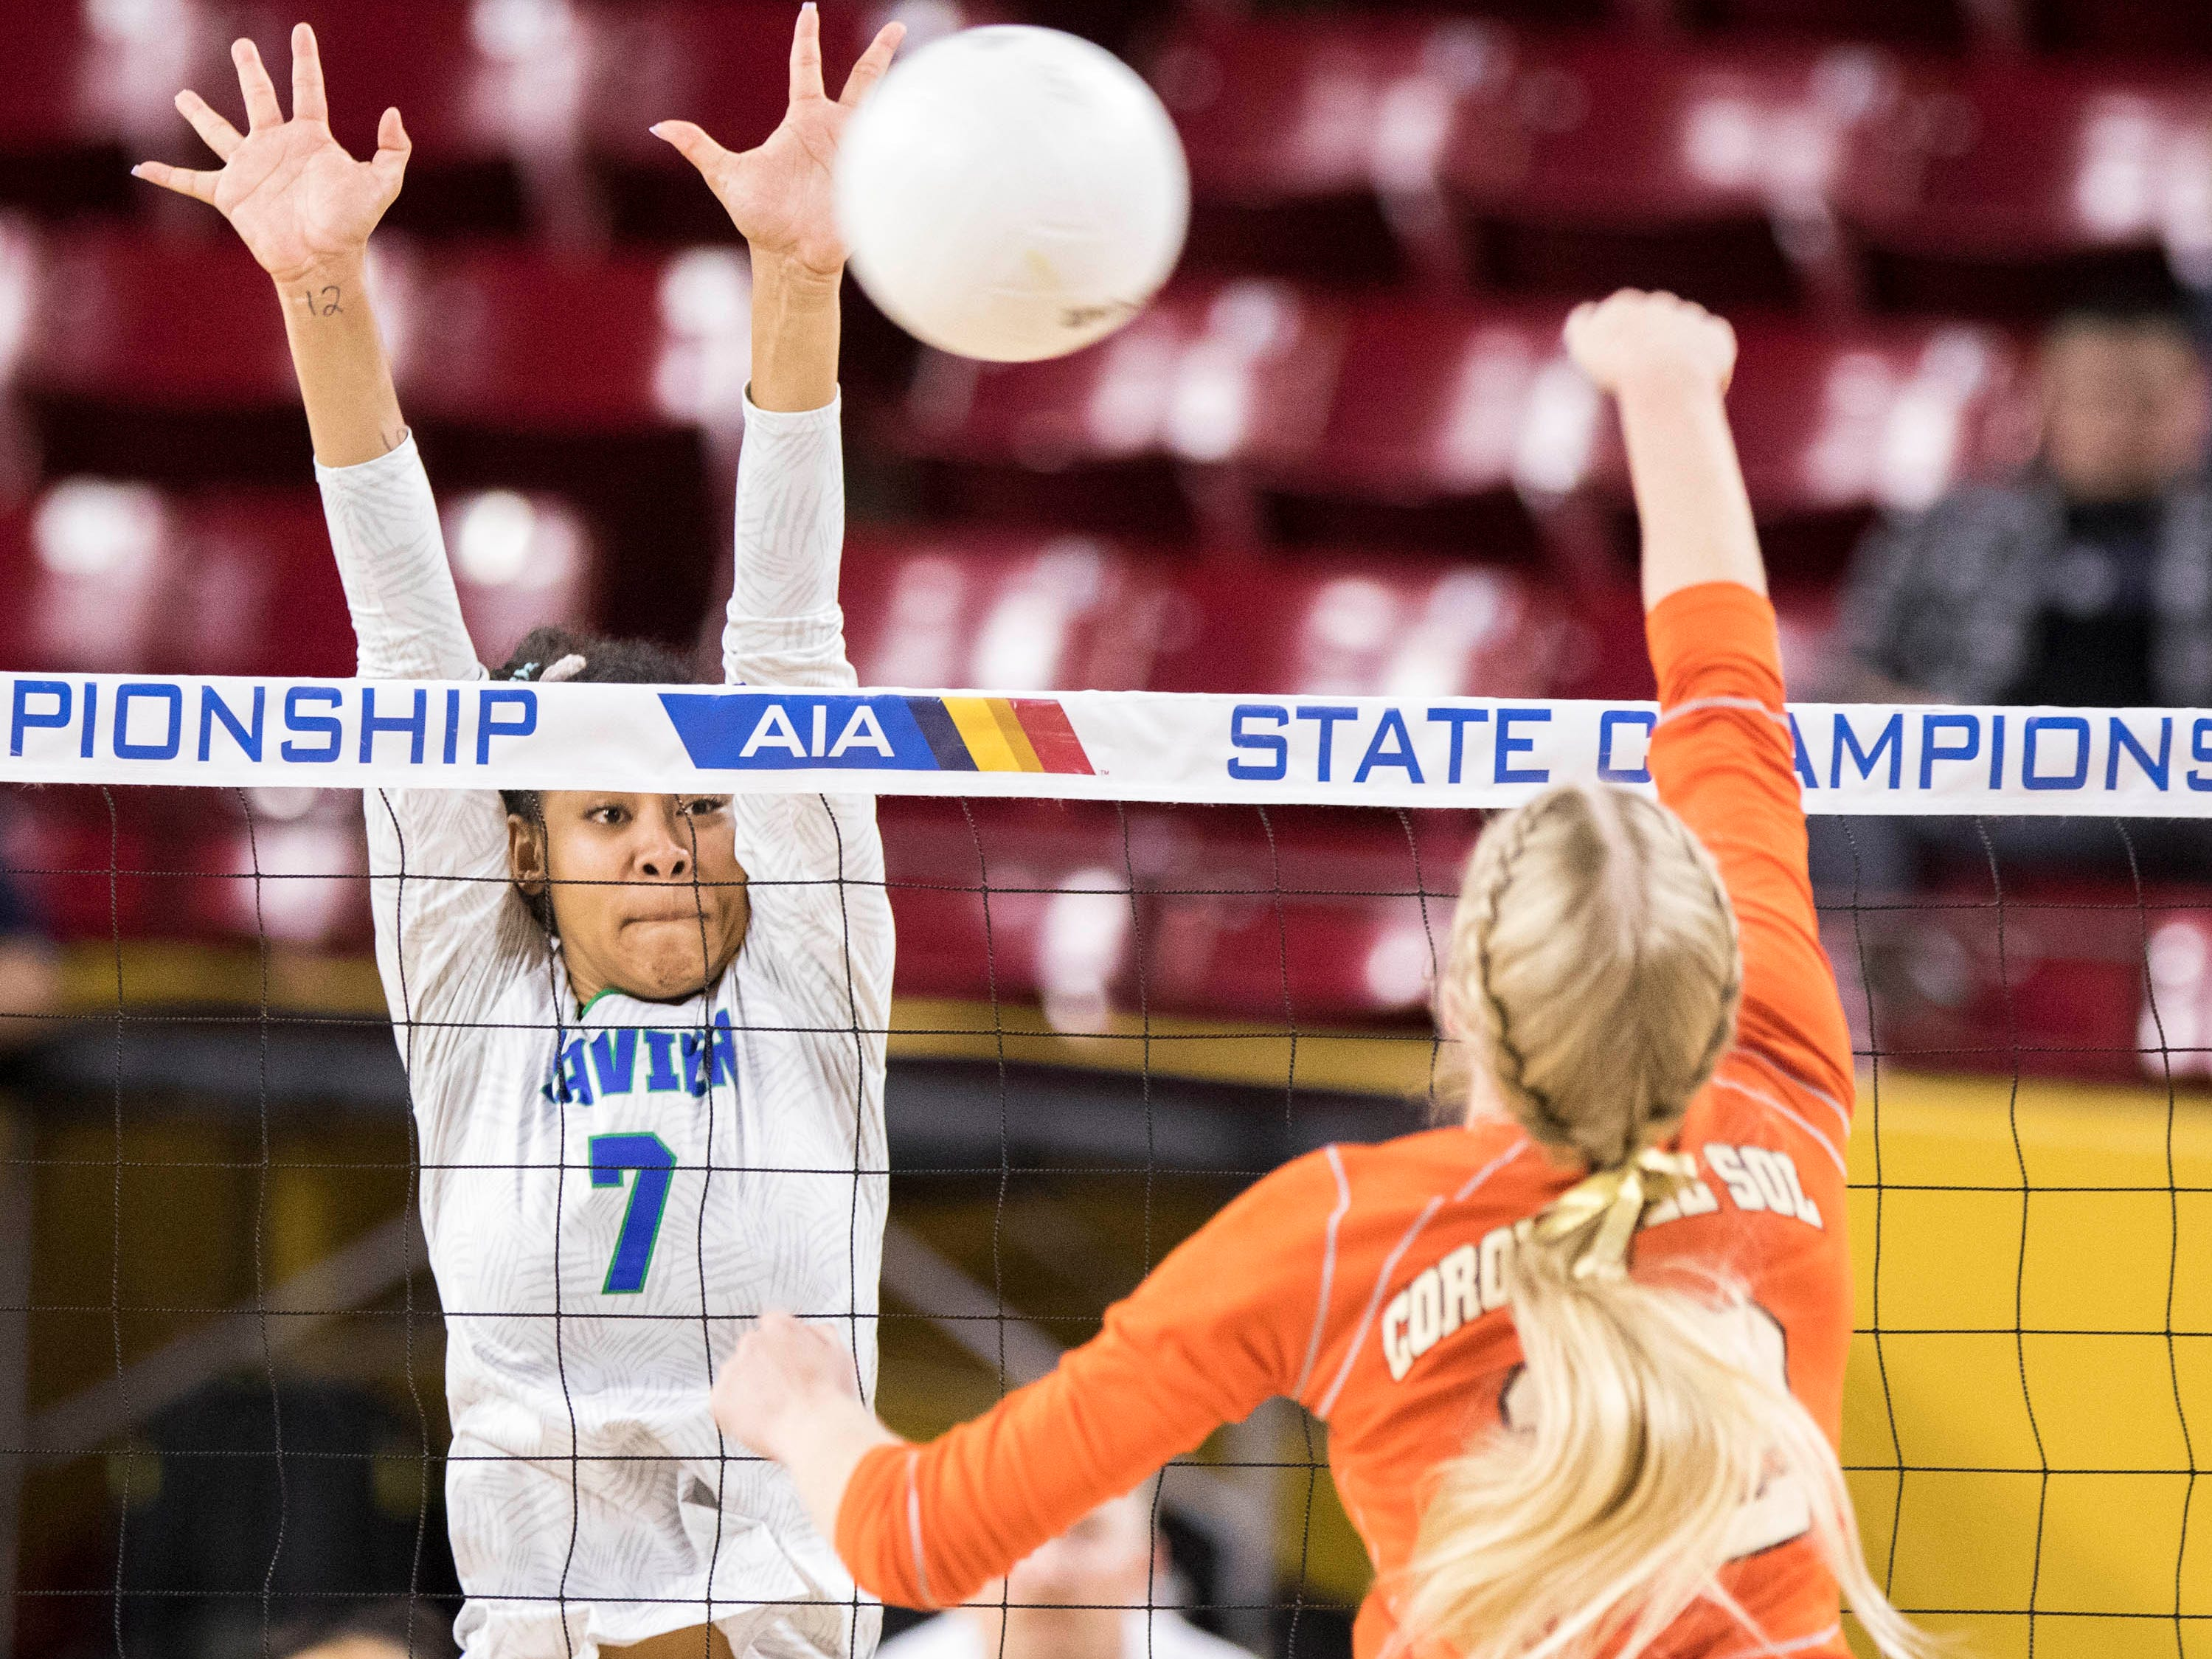 Xavier's Briana McKnight defends a shot from Corona del Sol's Nicole Newlin during the girls 6A volleyball state championship at Wells Fargo Arena in Tempe, Wednesday, Nov. 7, 2018.